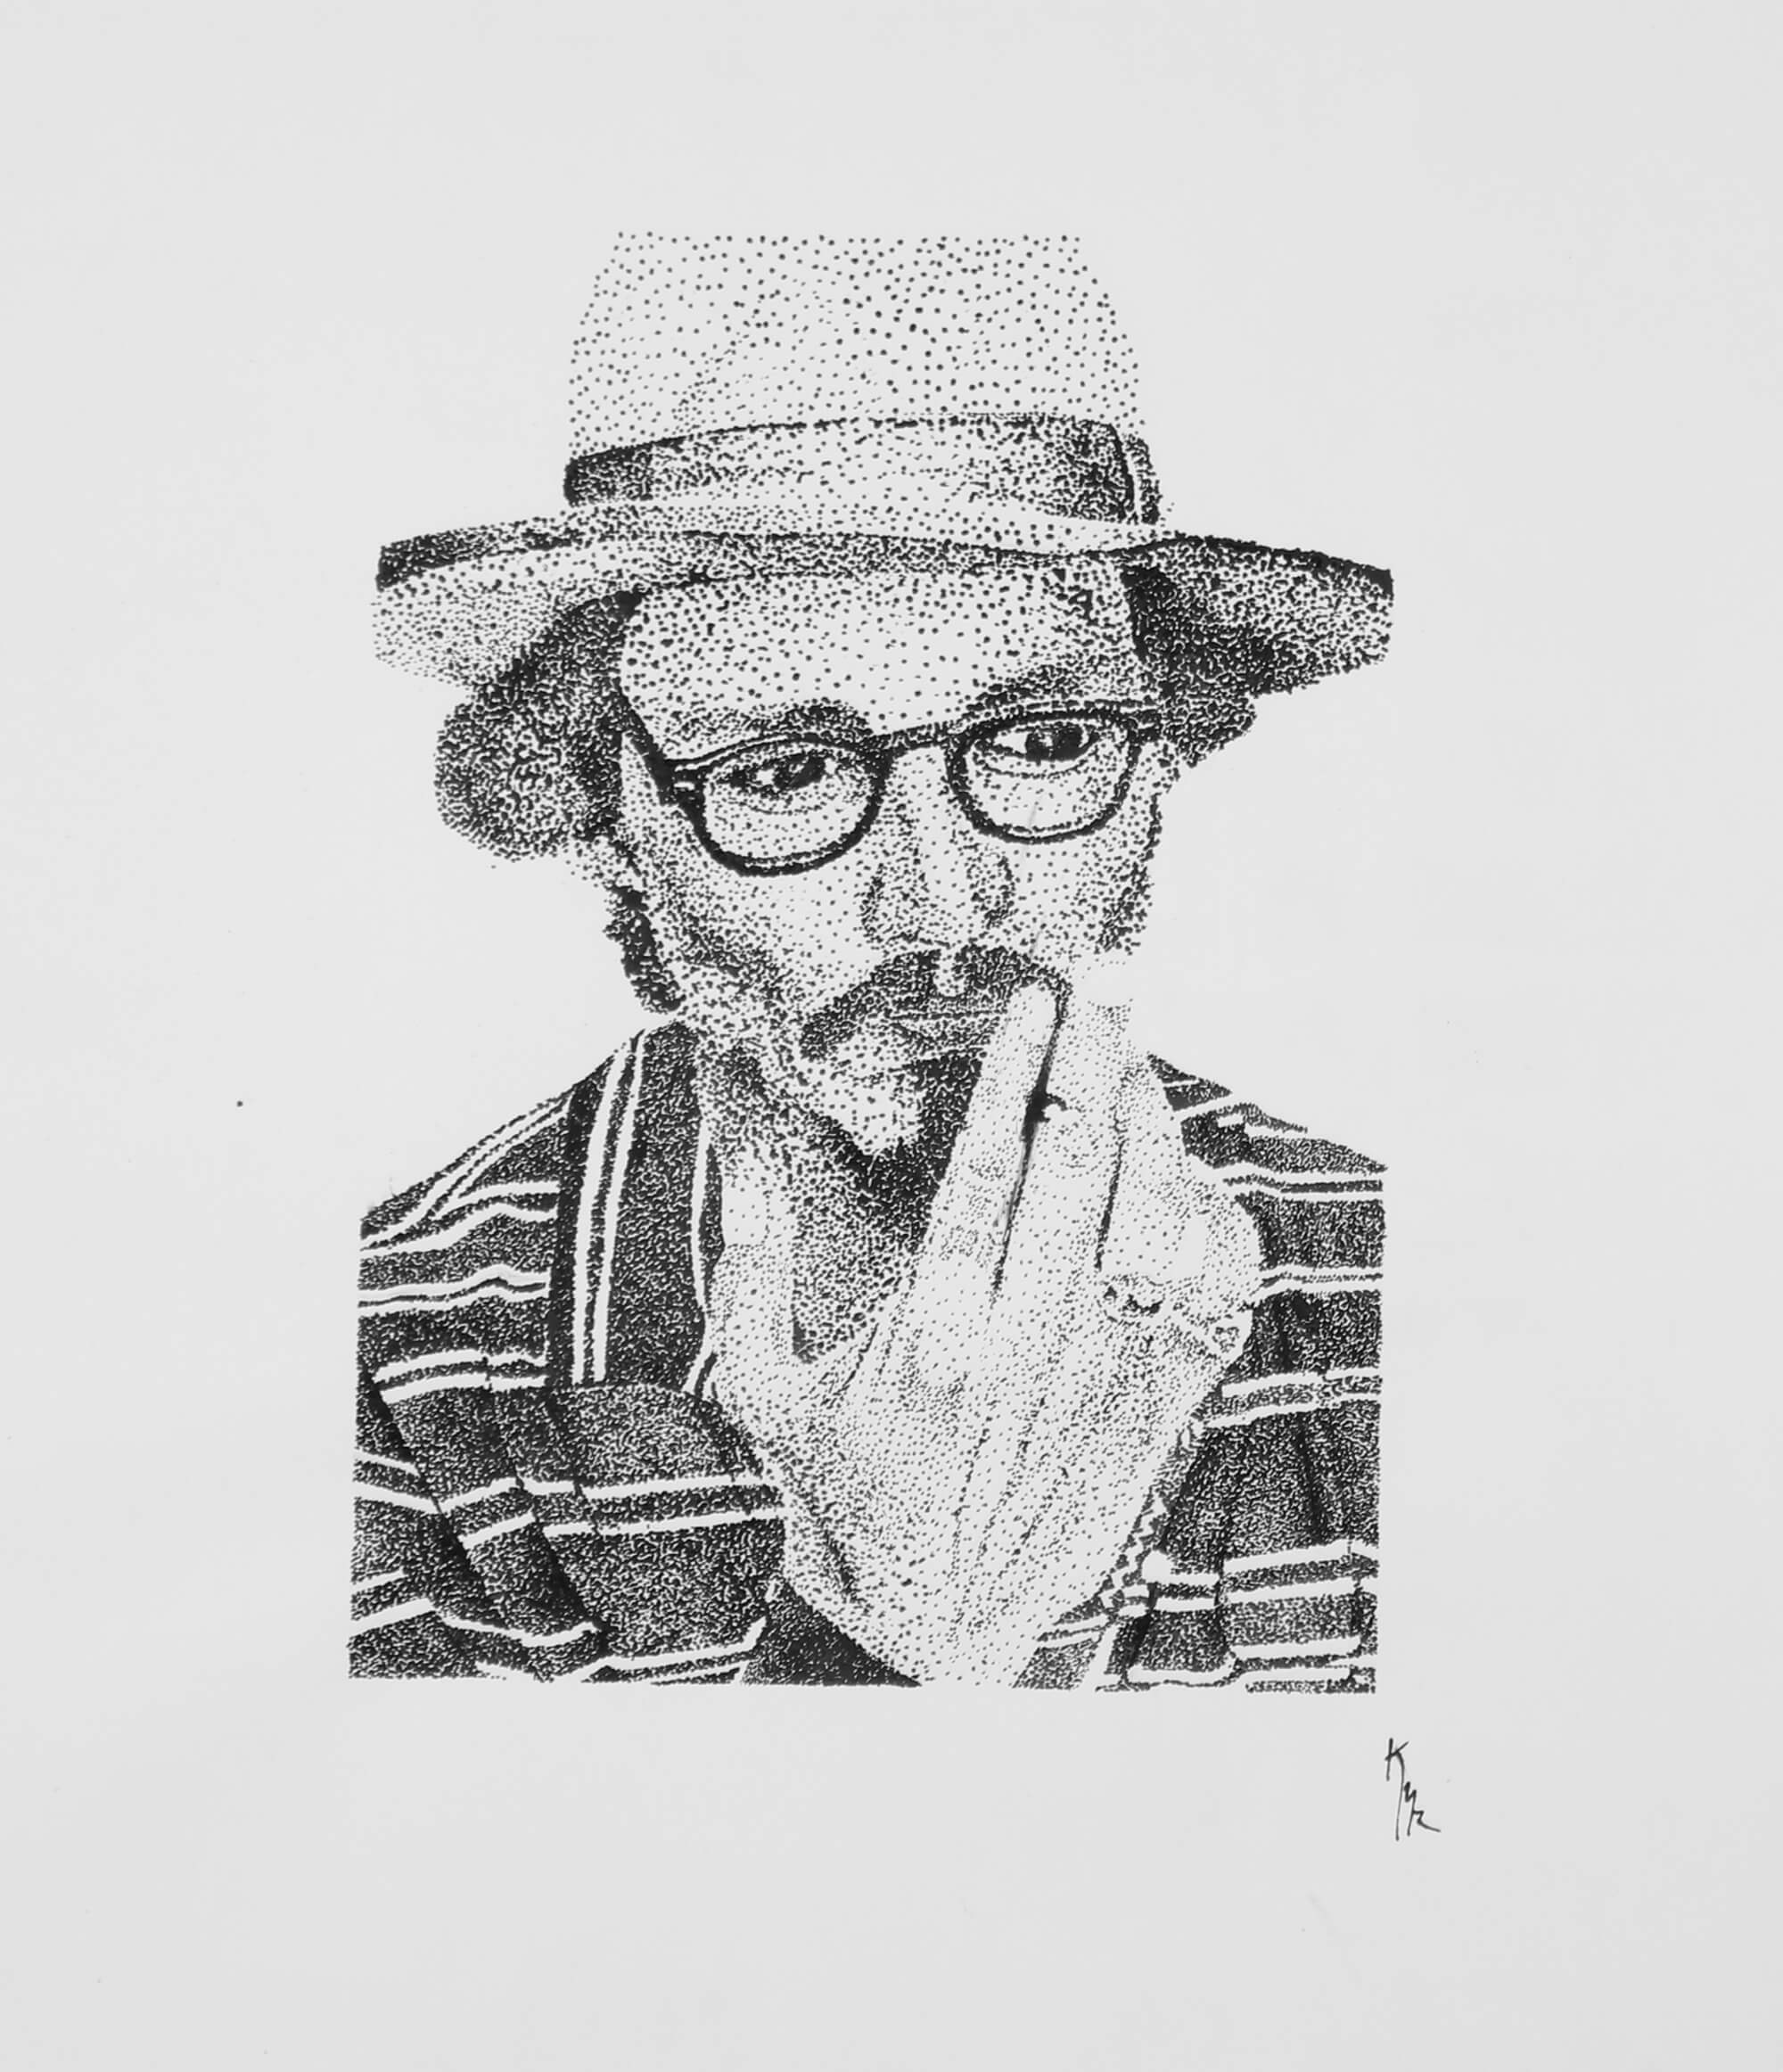 Ink dot drawing of portrait of Johnny Depp by Kevin Mejías